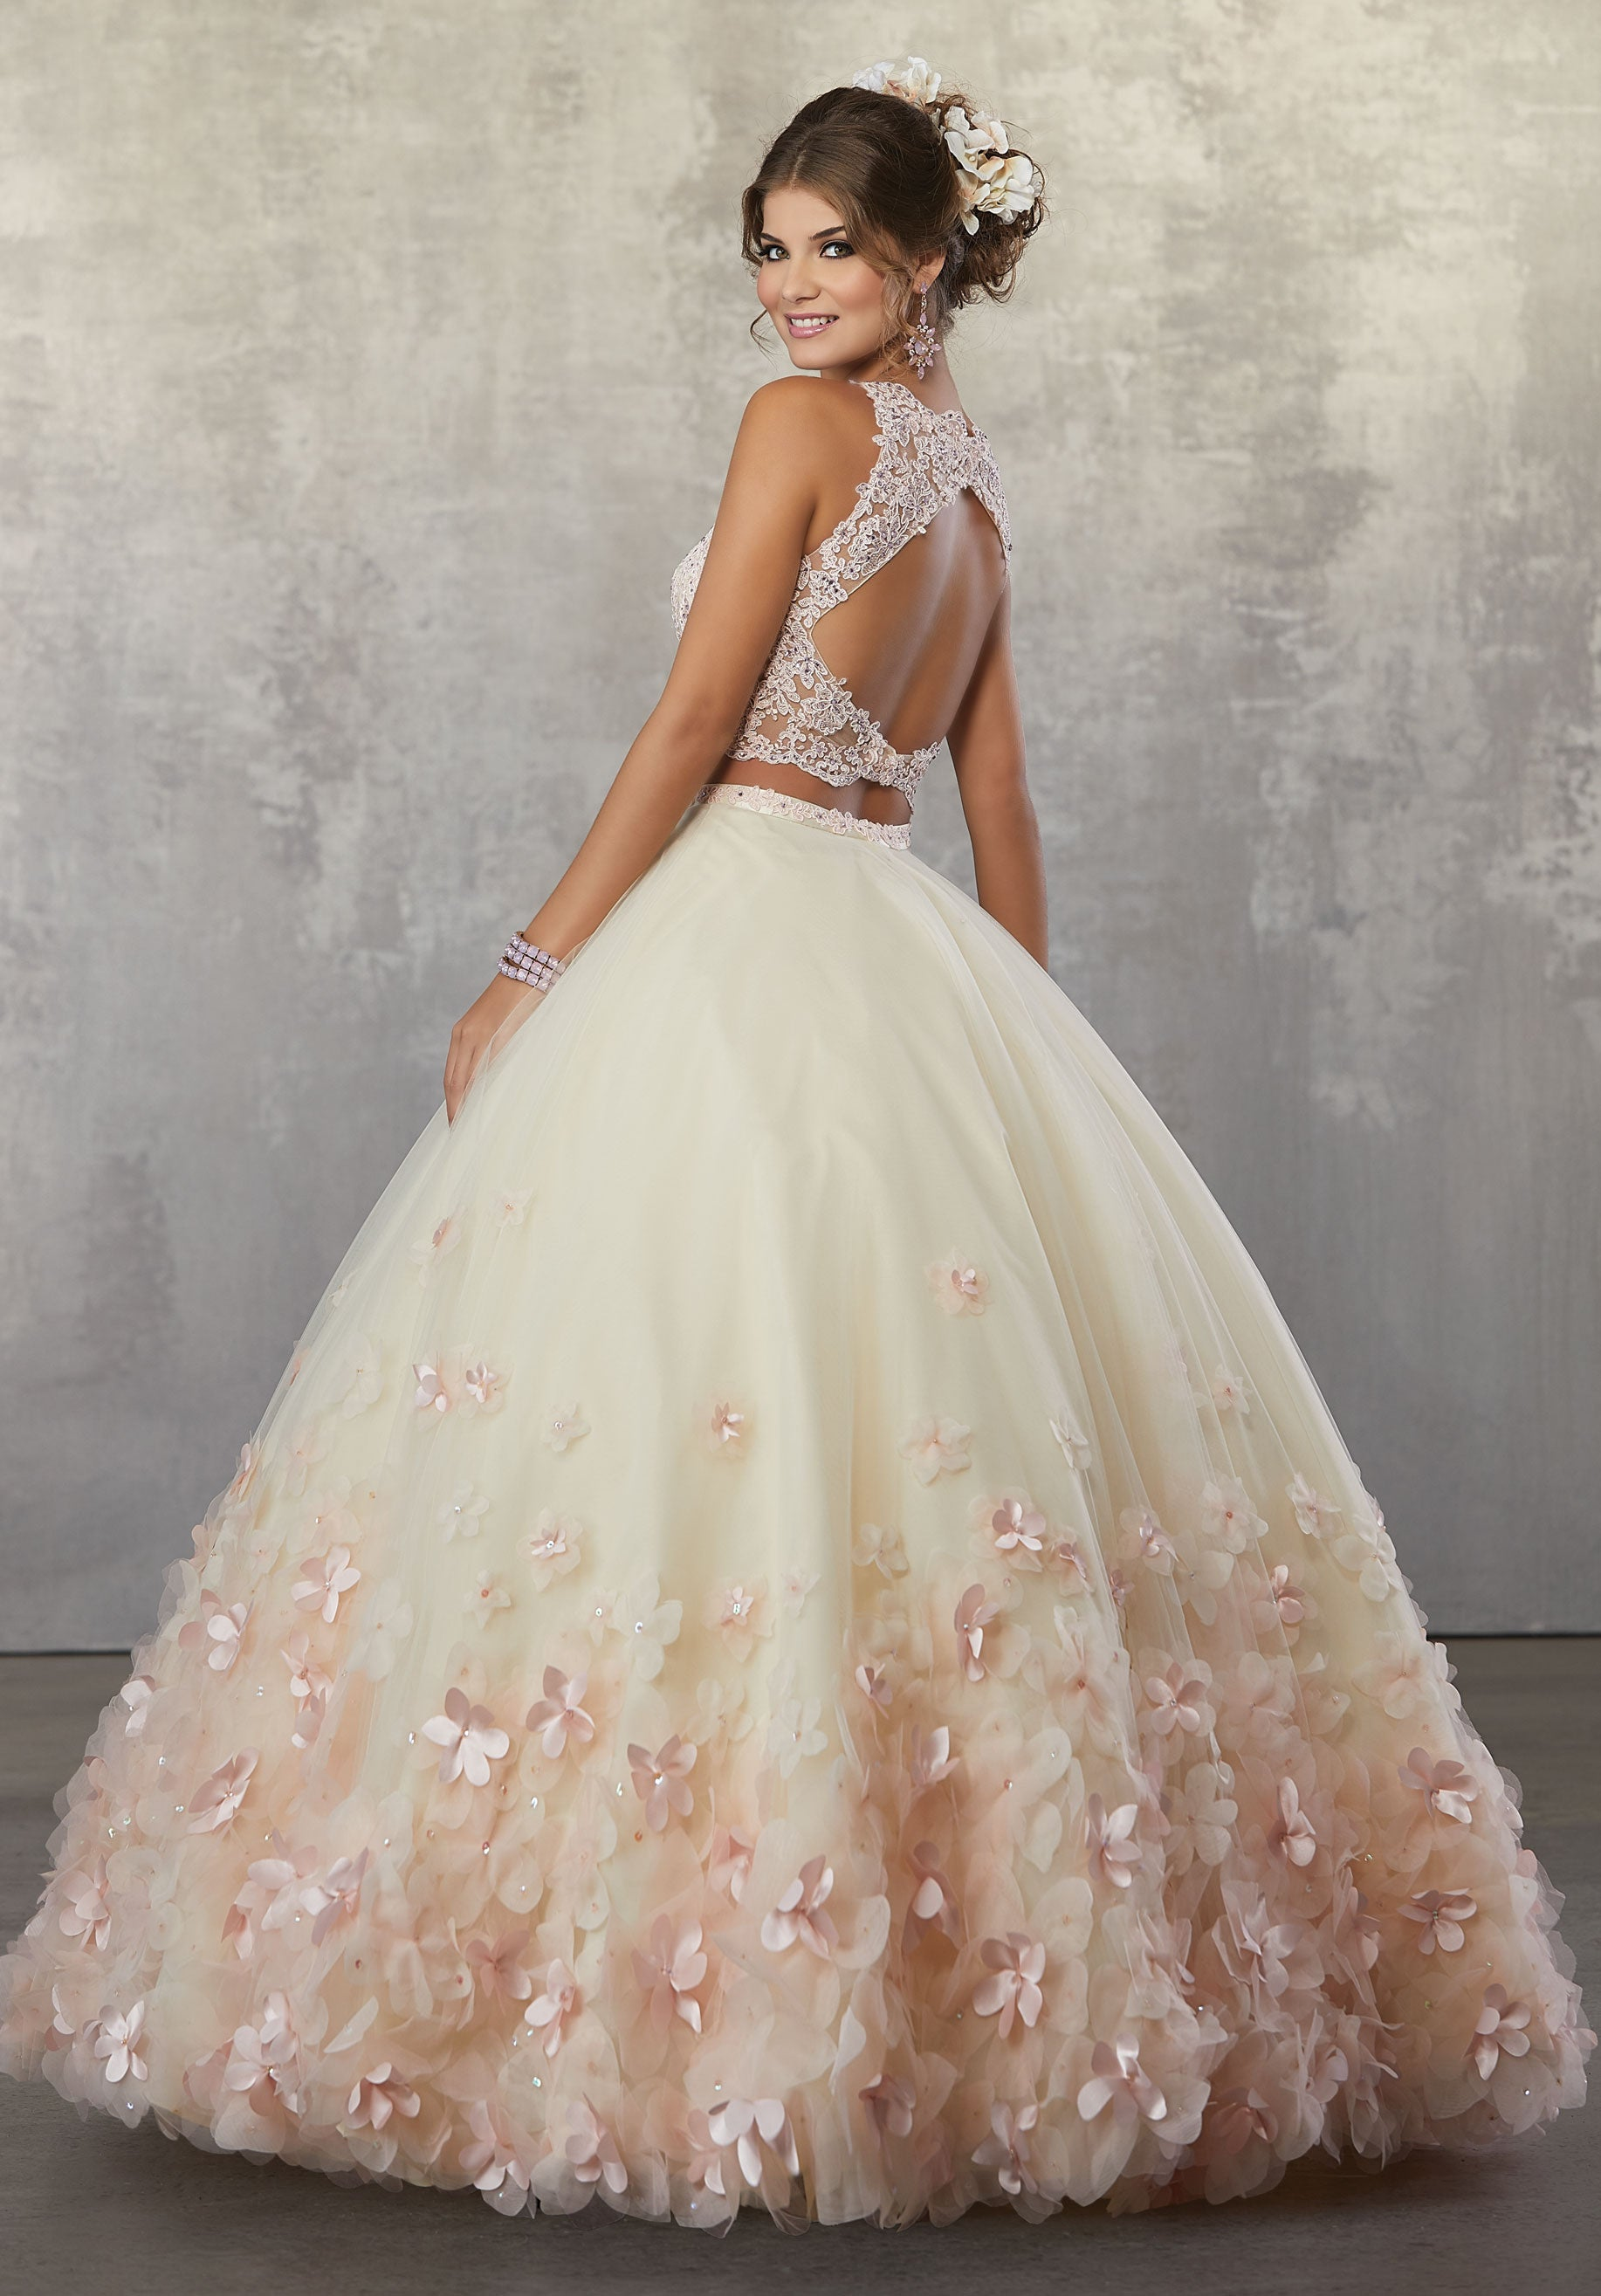 78064 Two-Piece Quinceanera Gown with Beaded Lace on Net Top and ...